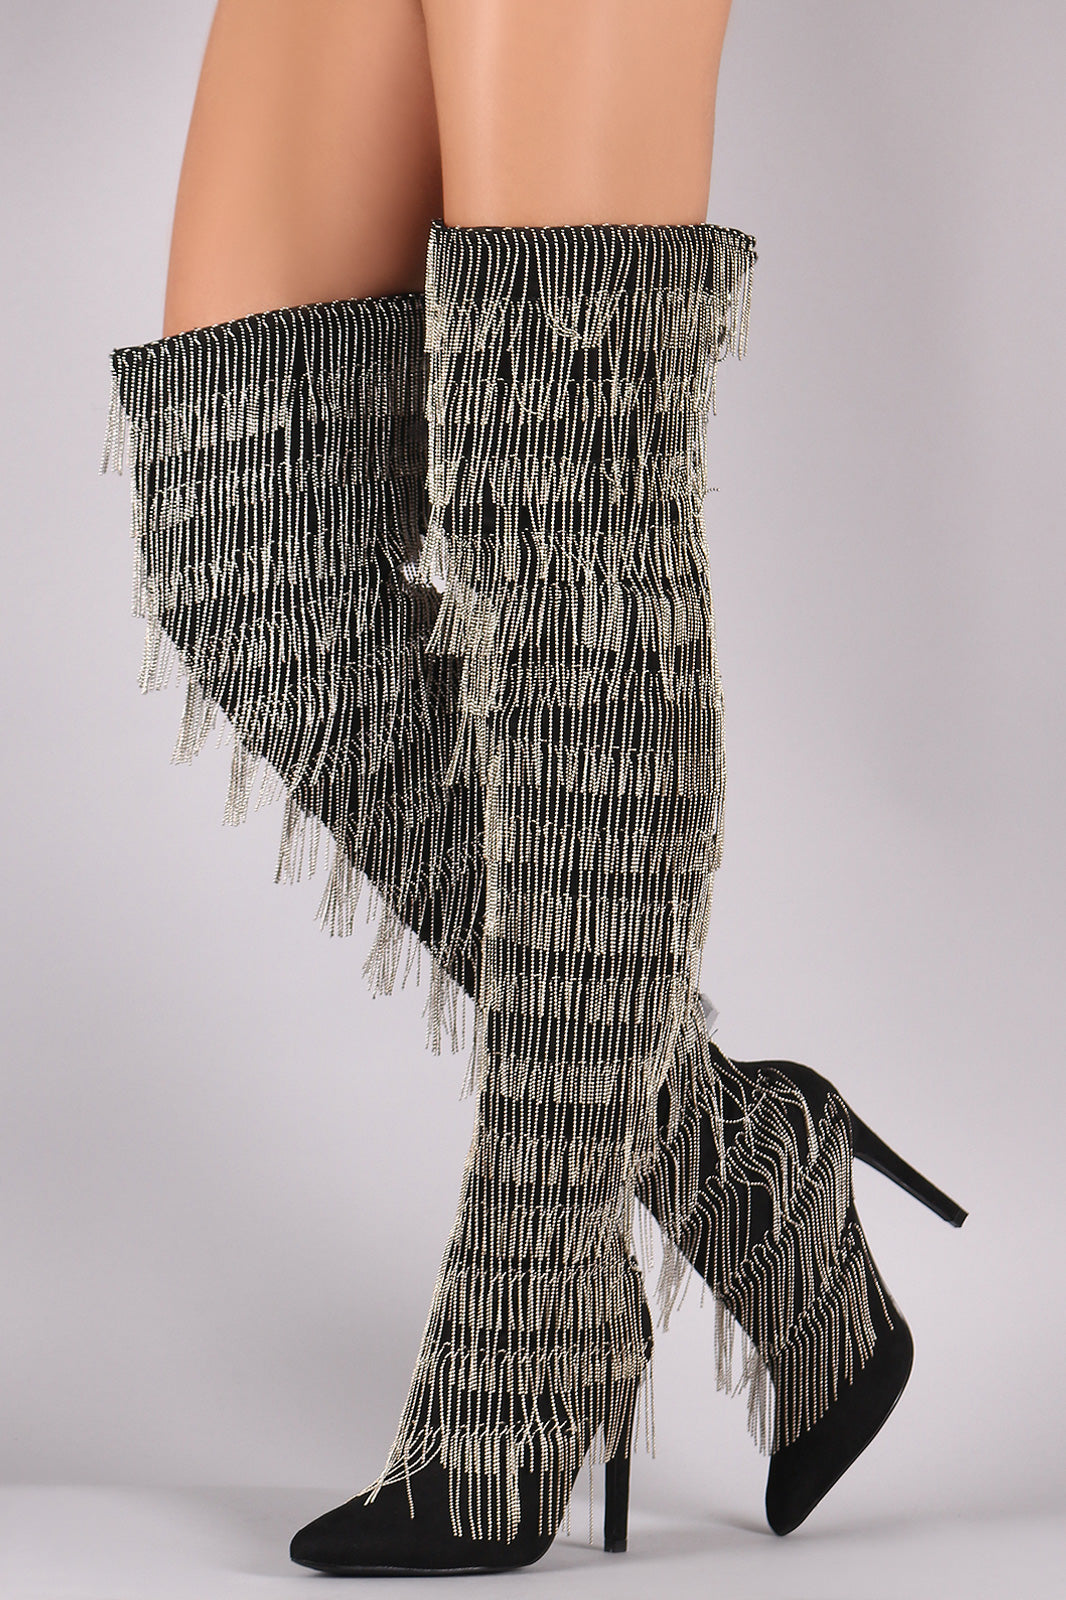 Chain Fringe Over-The-Knee Boots For Women By LUD | Shop Women's Fashion Lovely Stylish Fashionable Vegan Suede Pointy Toe Silhouette Chain Fringe Over-The-Knee Slim Stiletto Boots